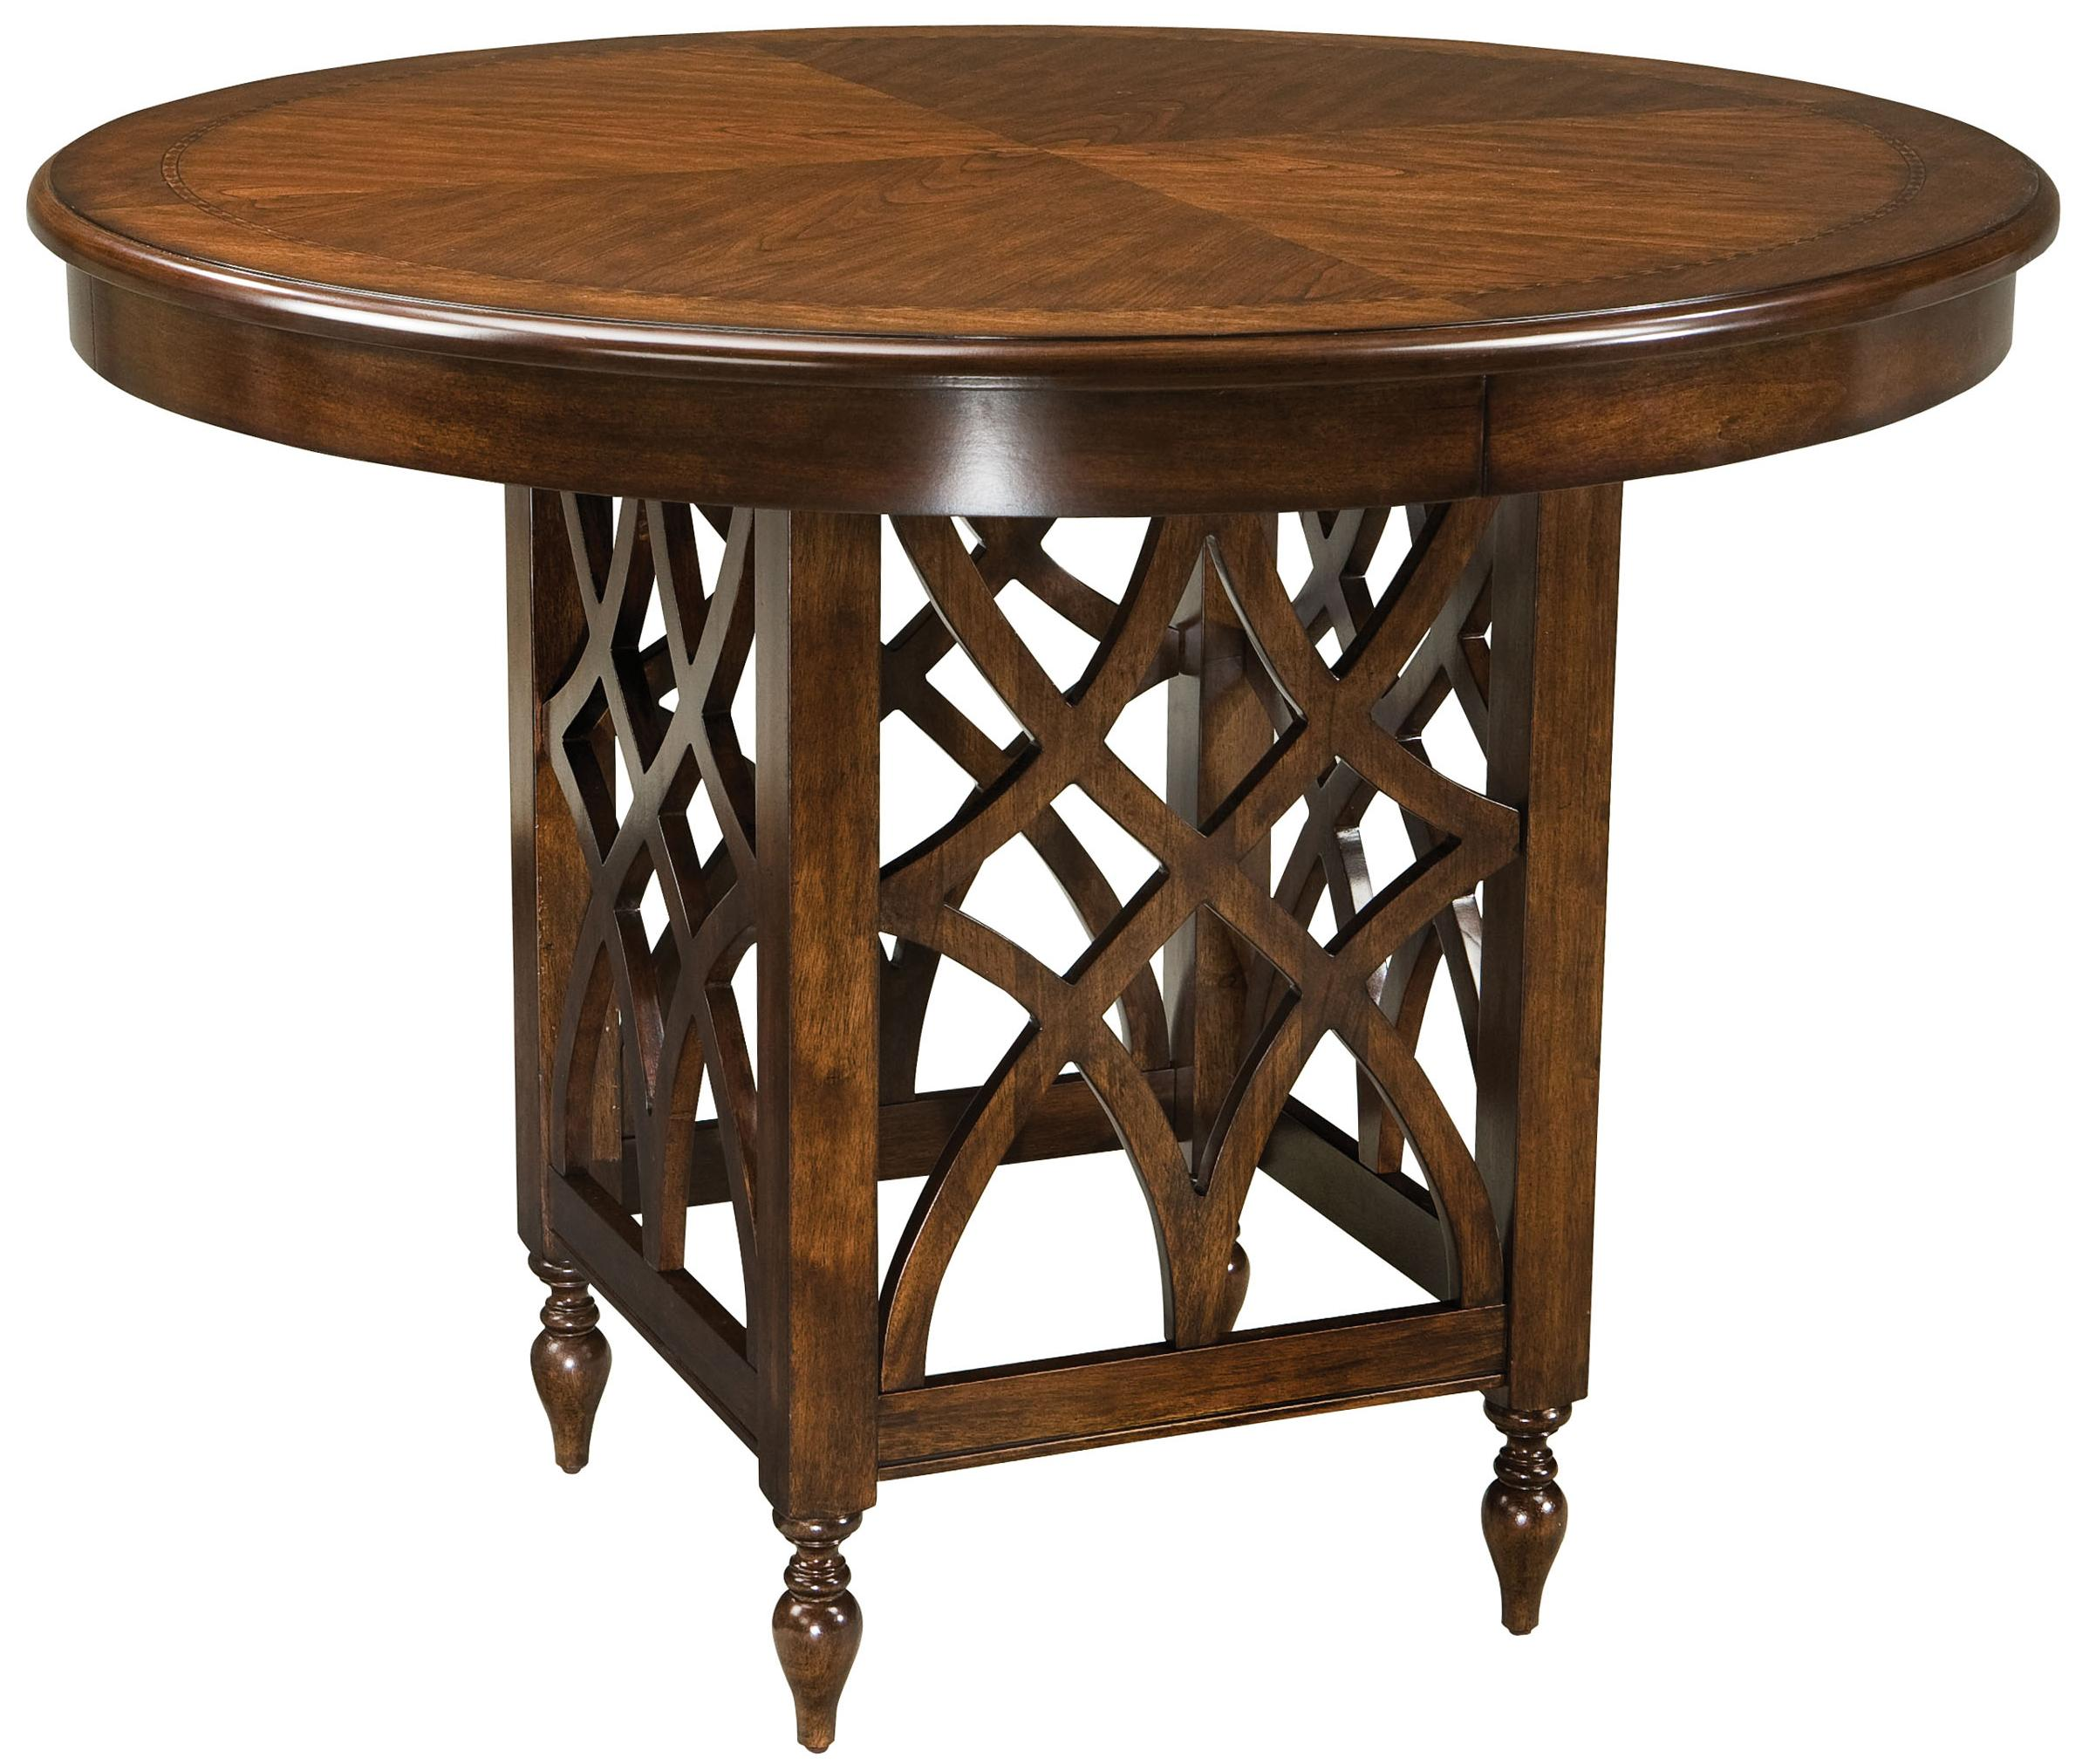 Standard Furniture Woodmont Round Counter Height Table with